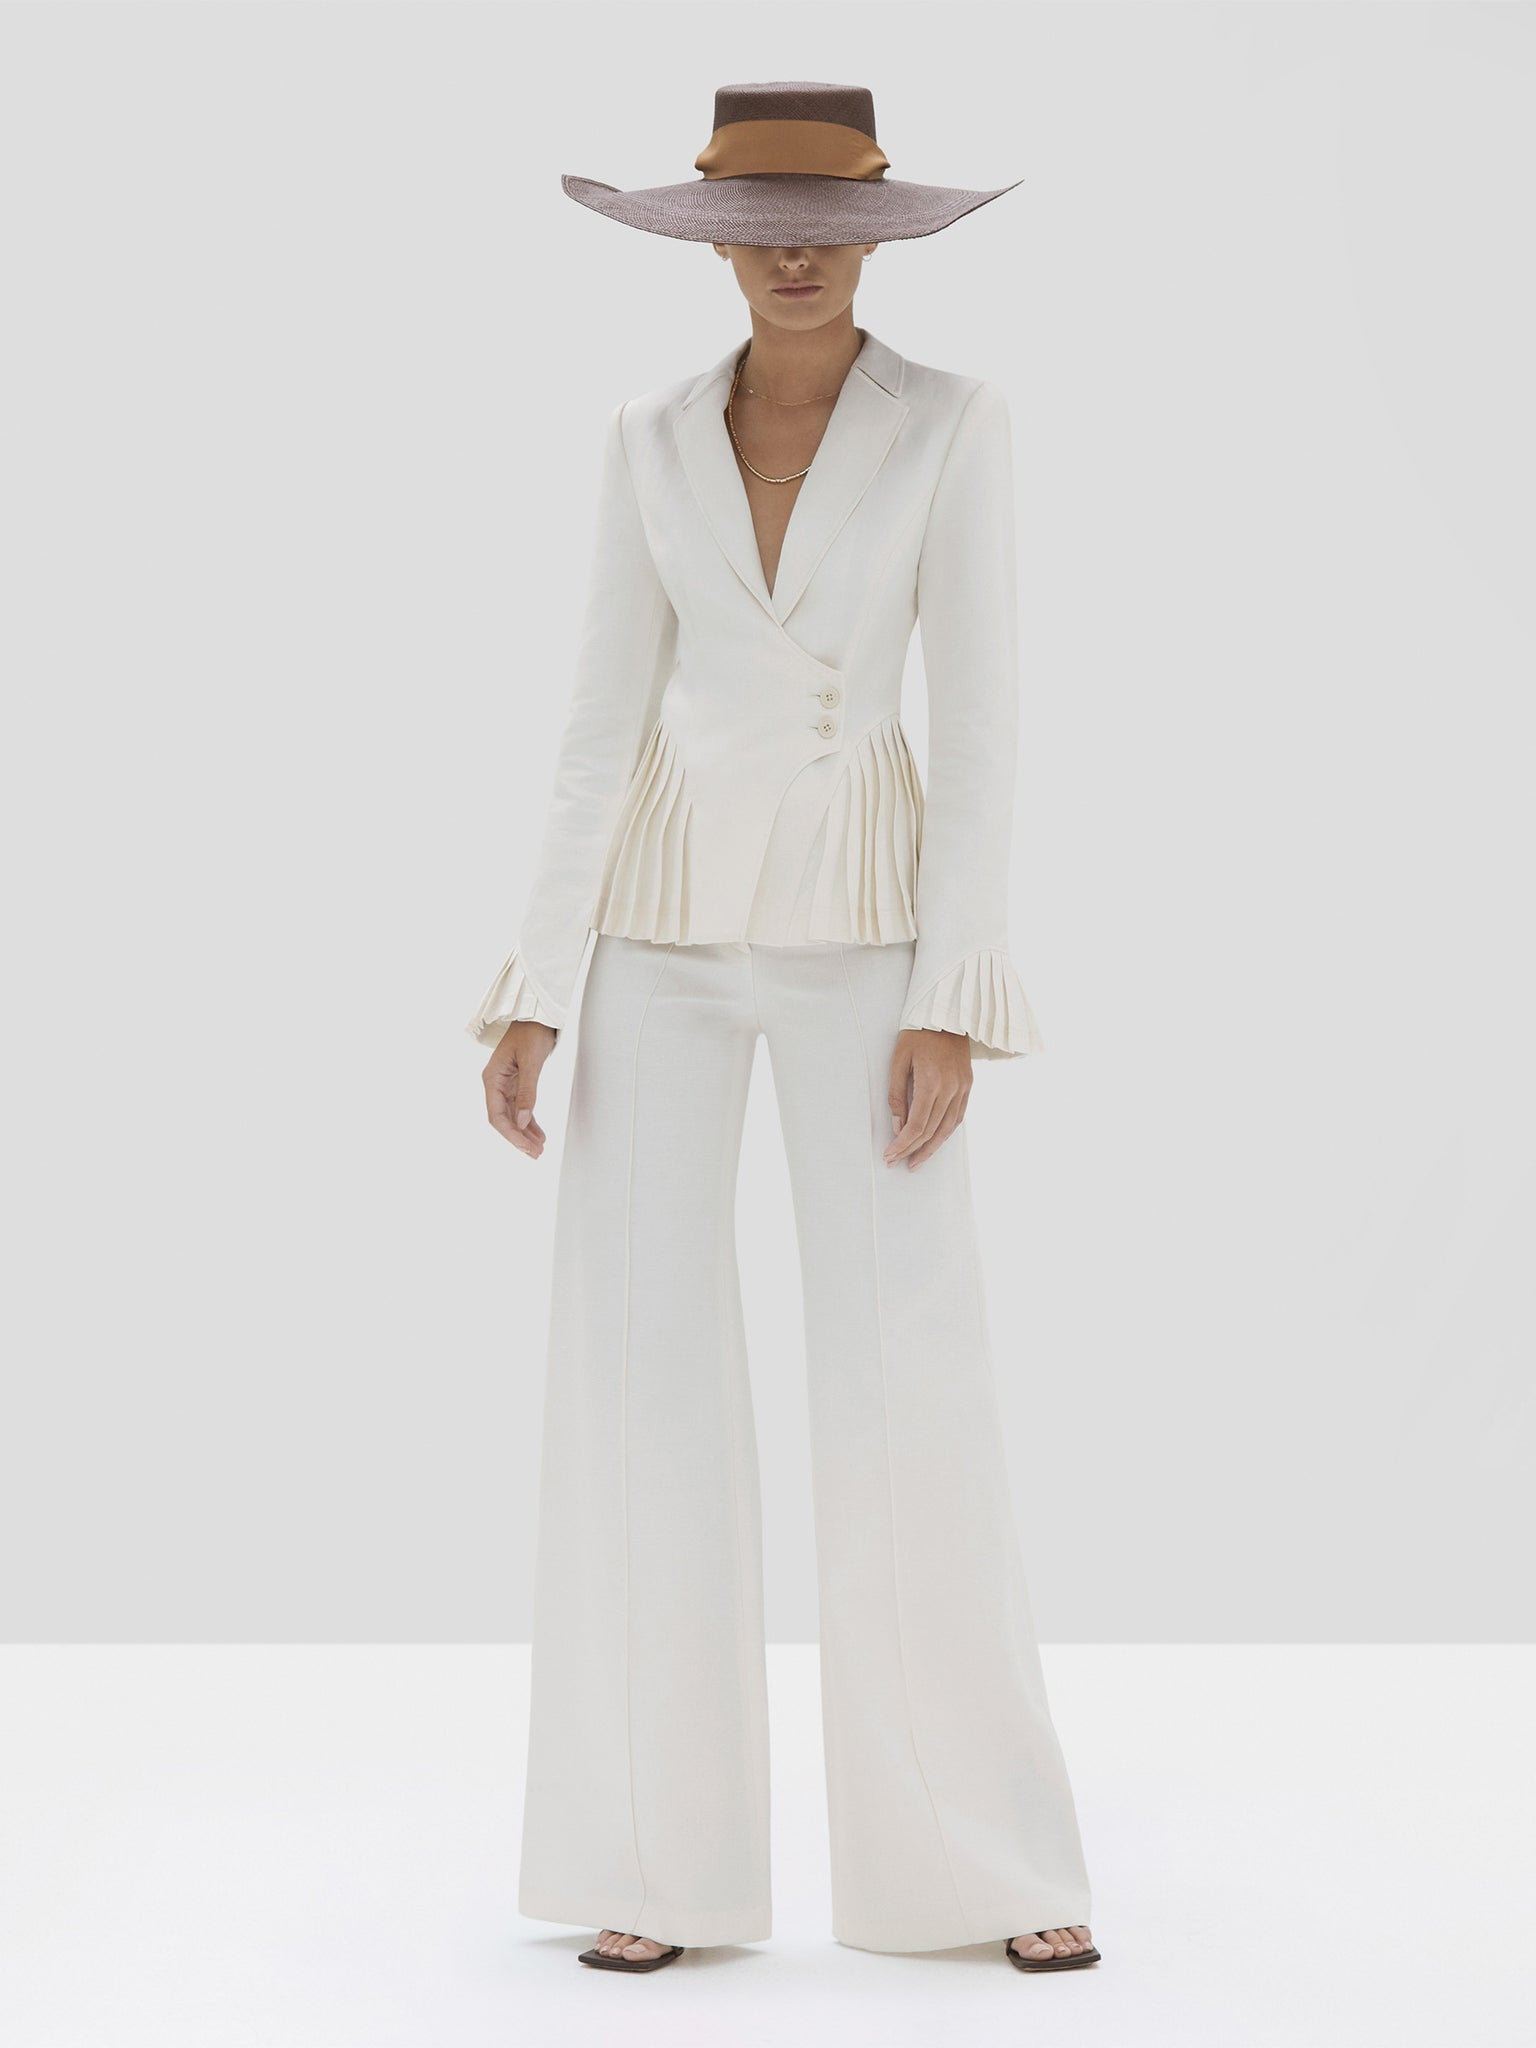 The Alfons Pant in Off White from the Spring Summer 2020 Ready To Wear Collection